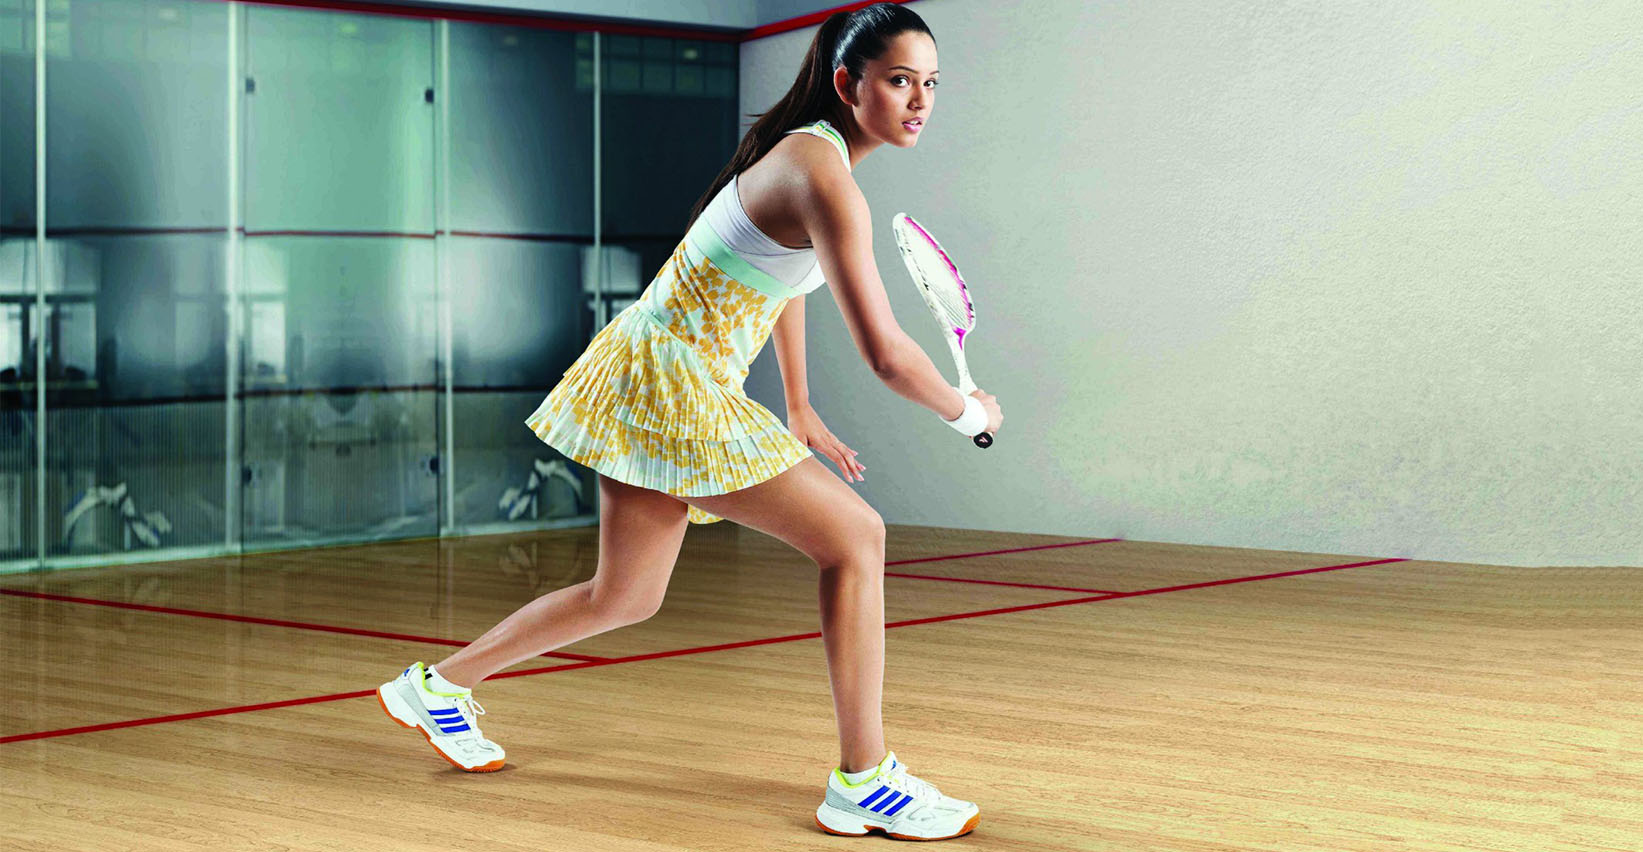 Indian Squash Poster Girl Fighting For Equality-1268